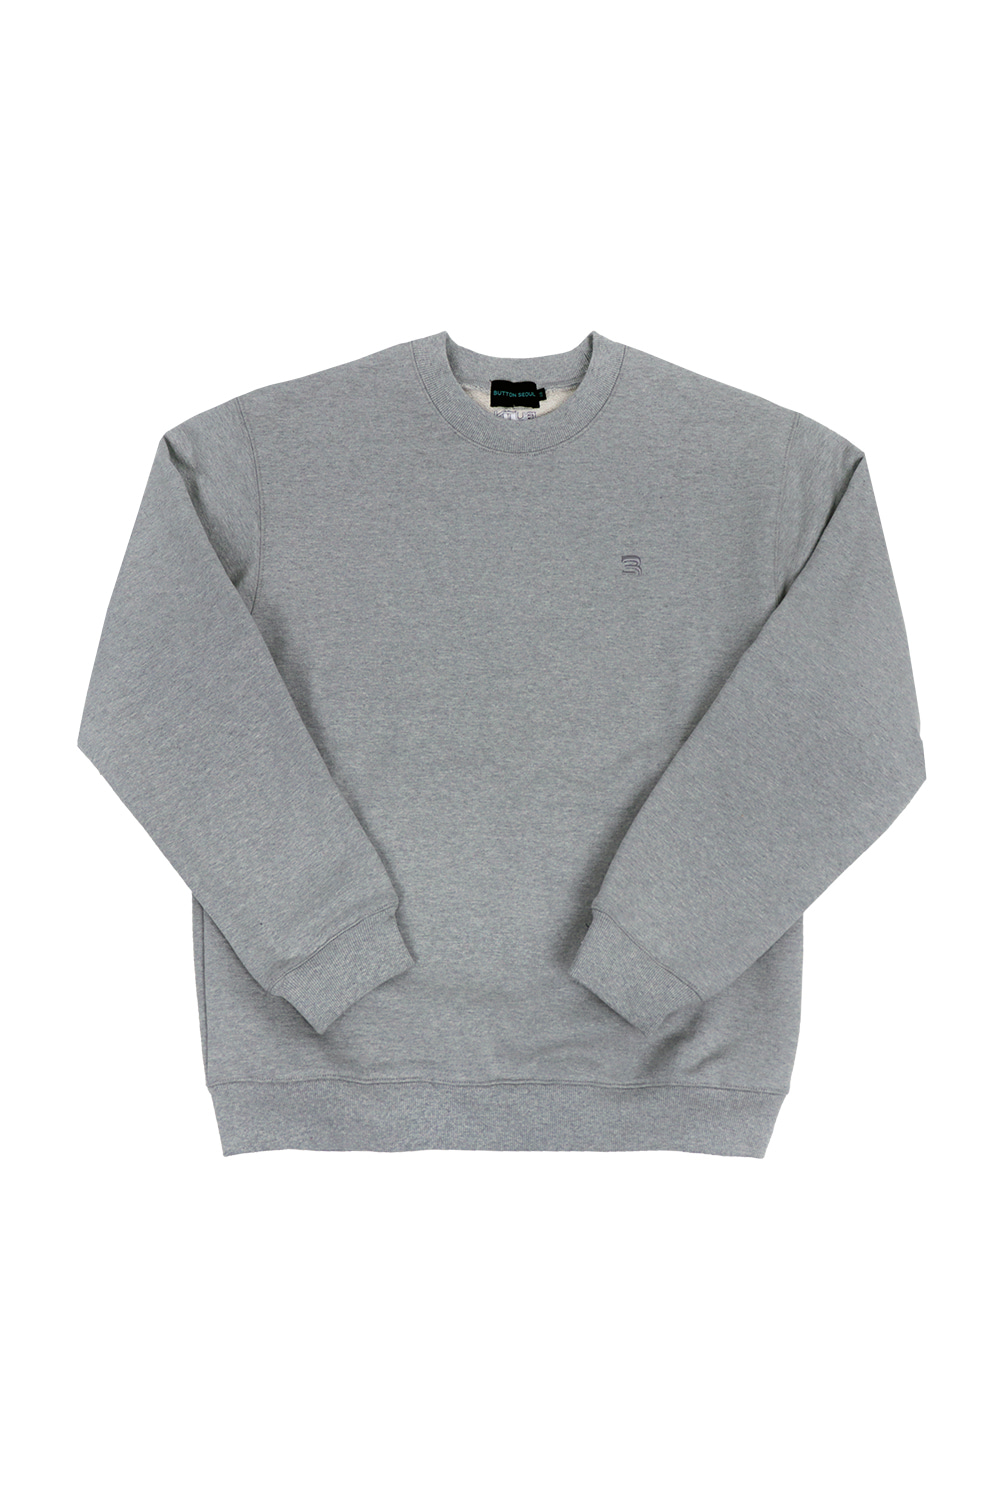 OverSize Heavy Sweat Shirt (Grey)